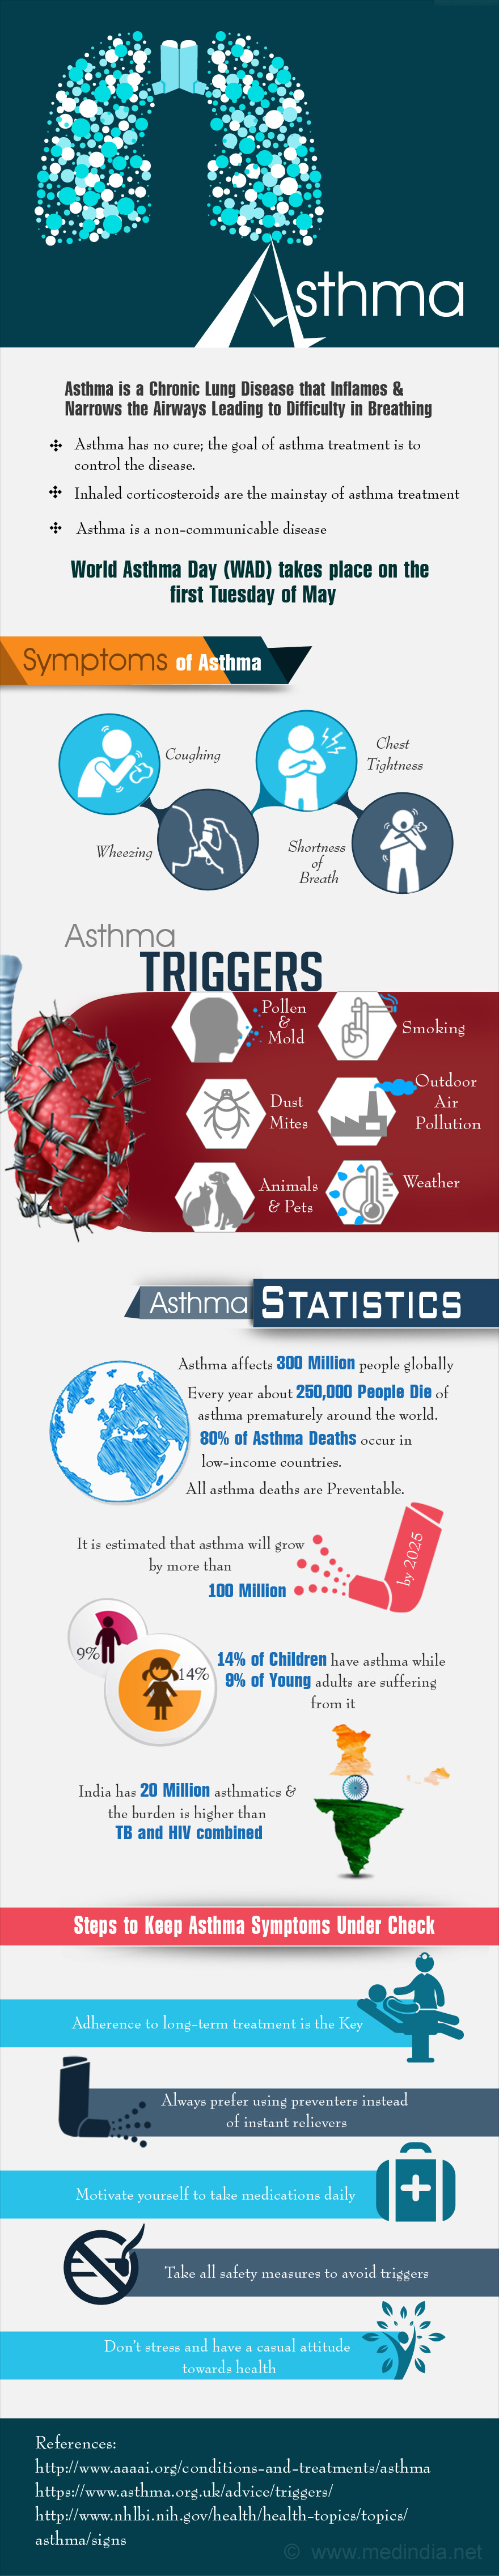 Asthma - Infographic